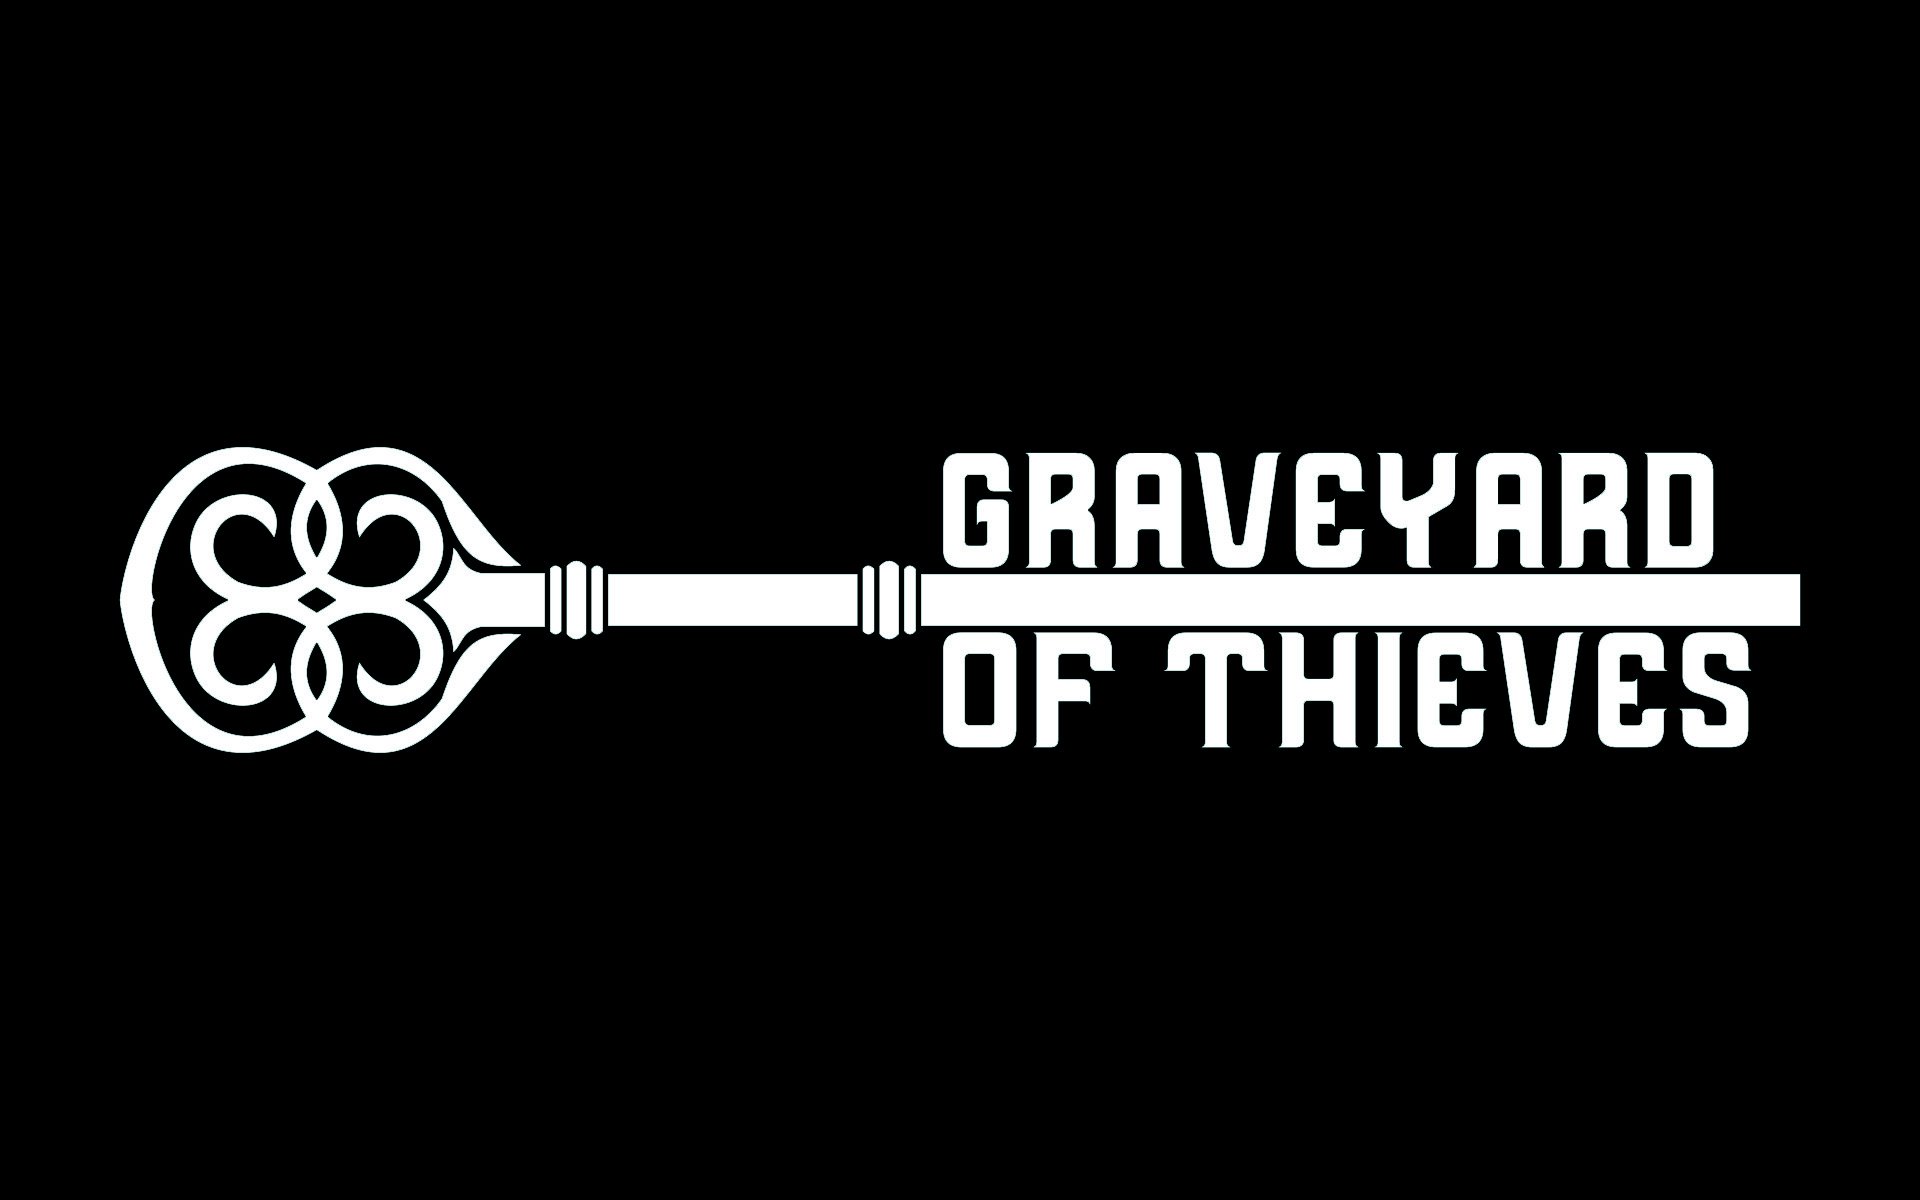 Graveyard of Thieves